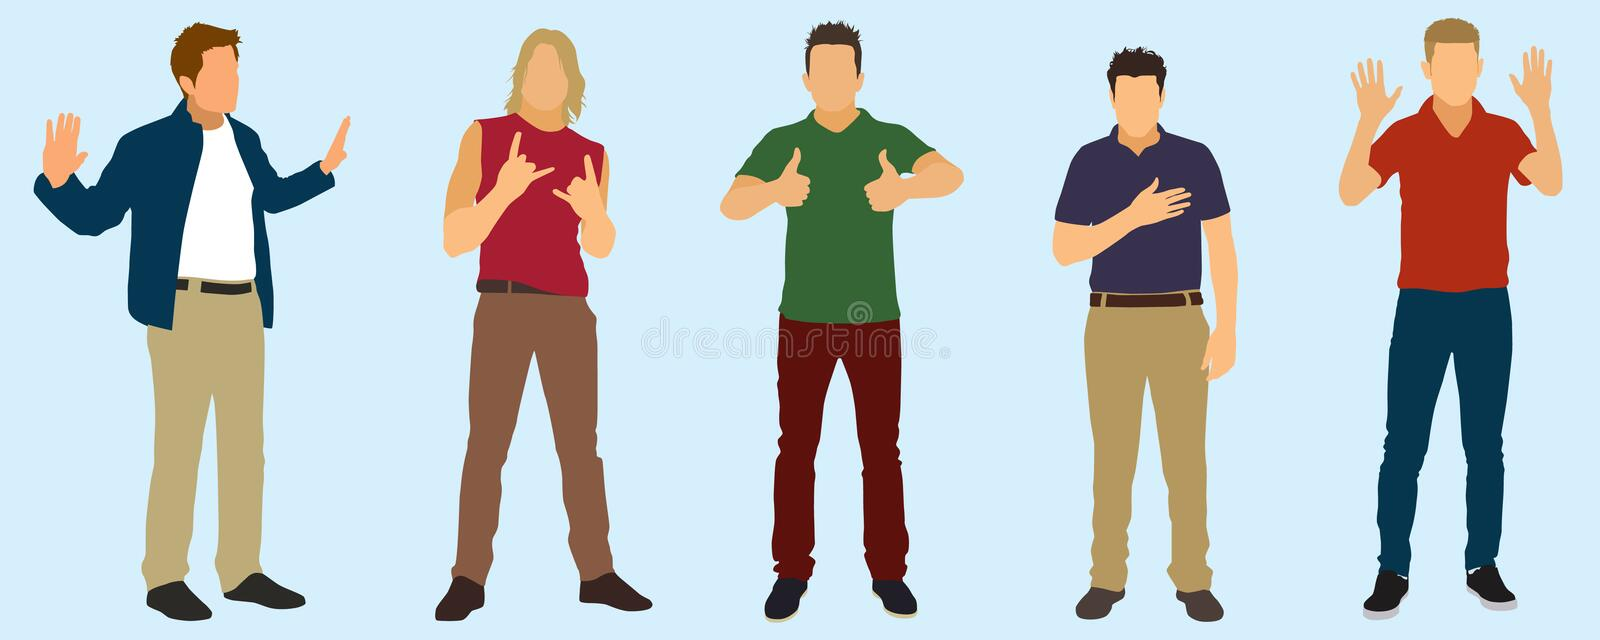 Gestures Stock Photography